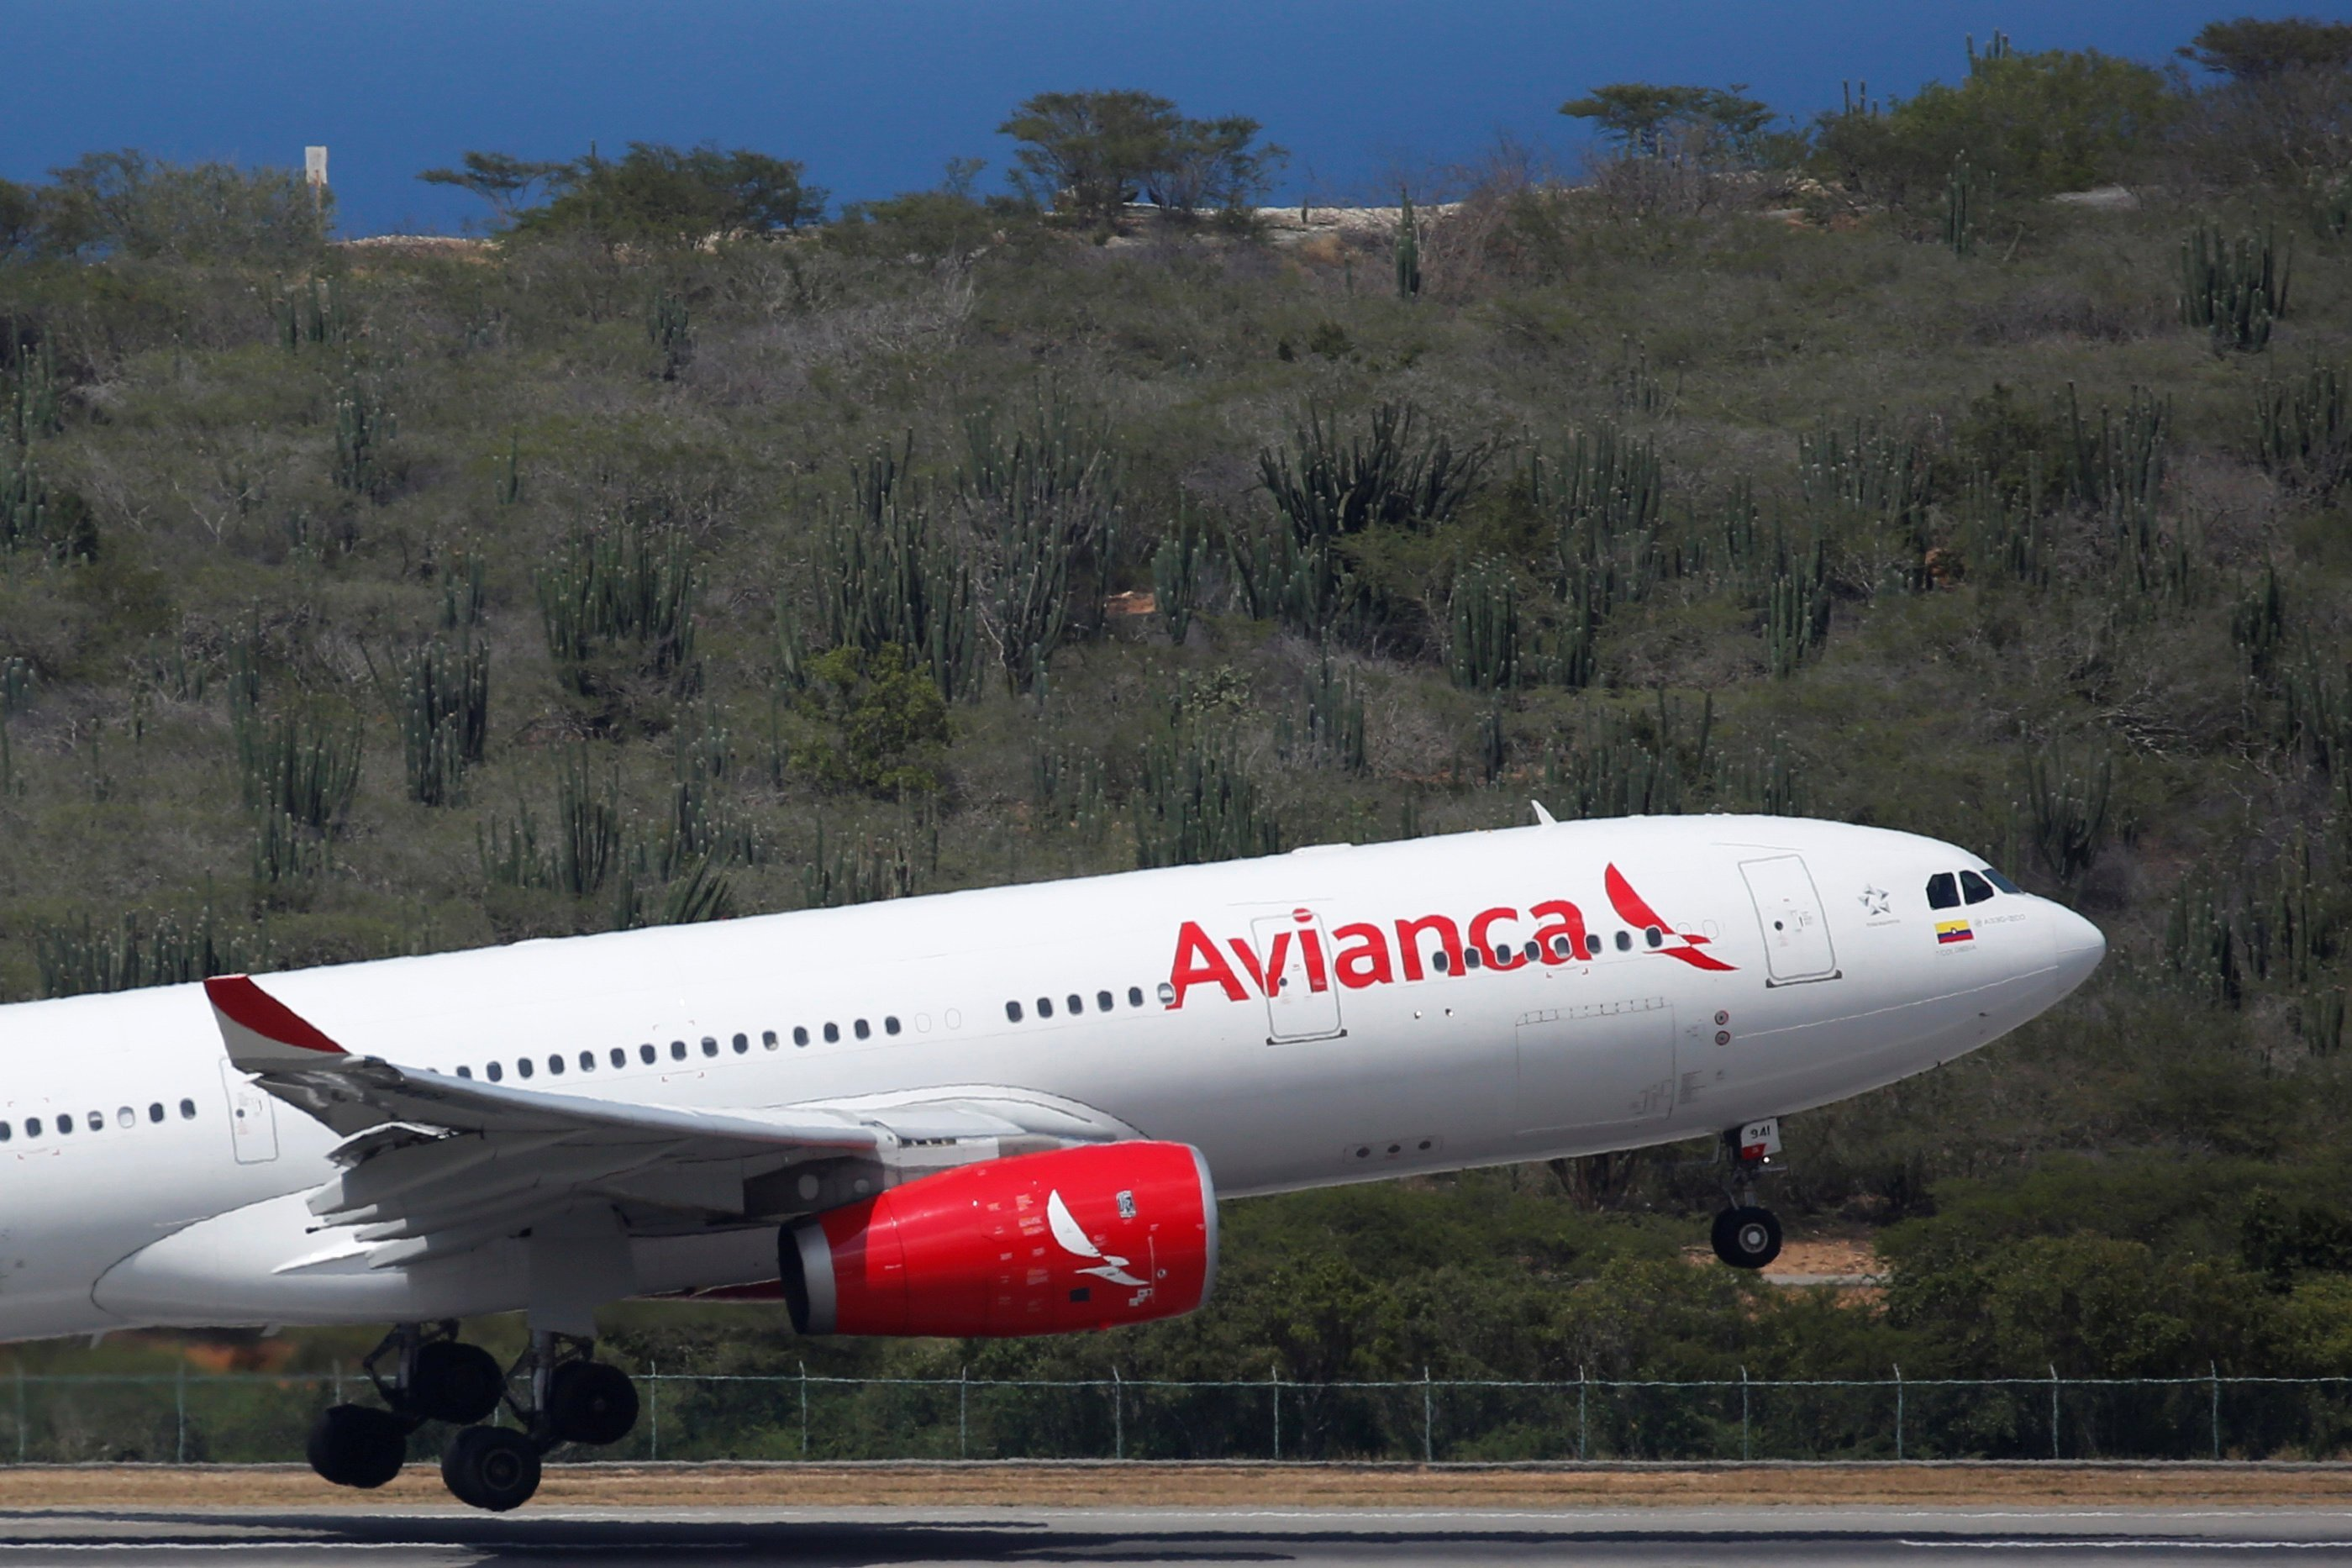 Avianca aircraft taking off